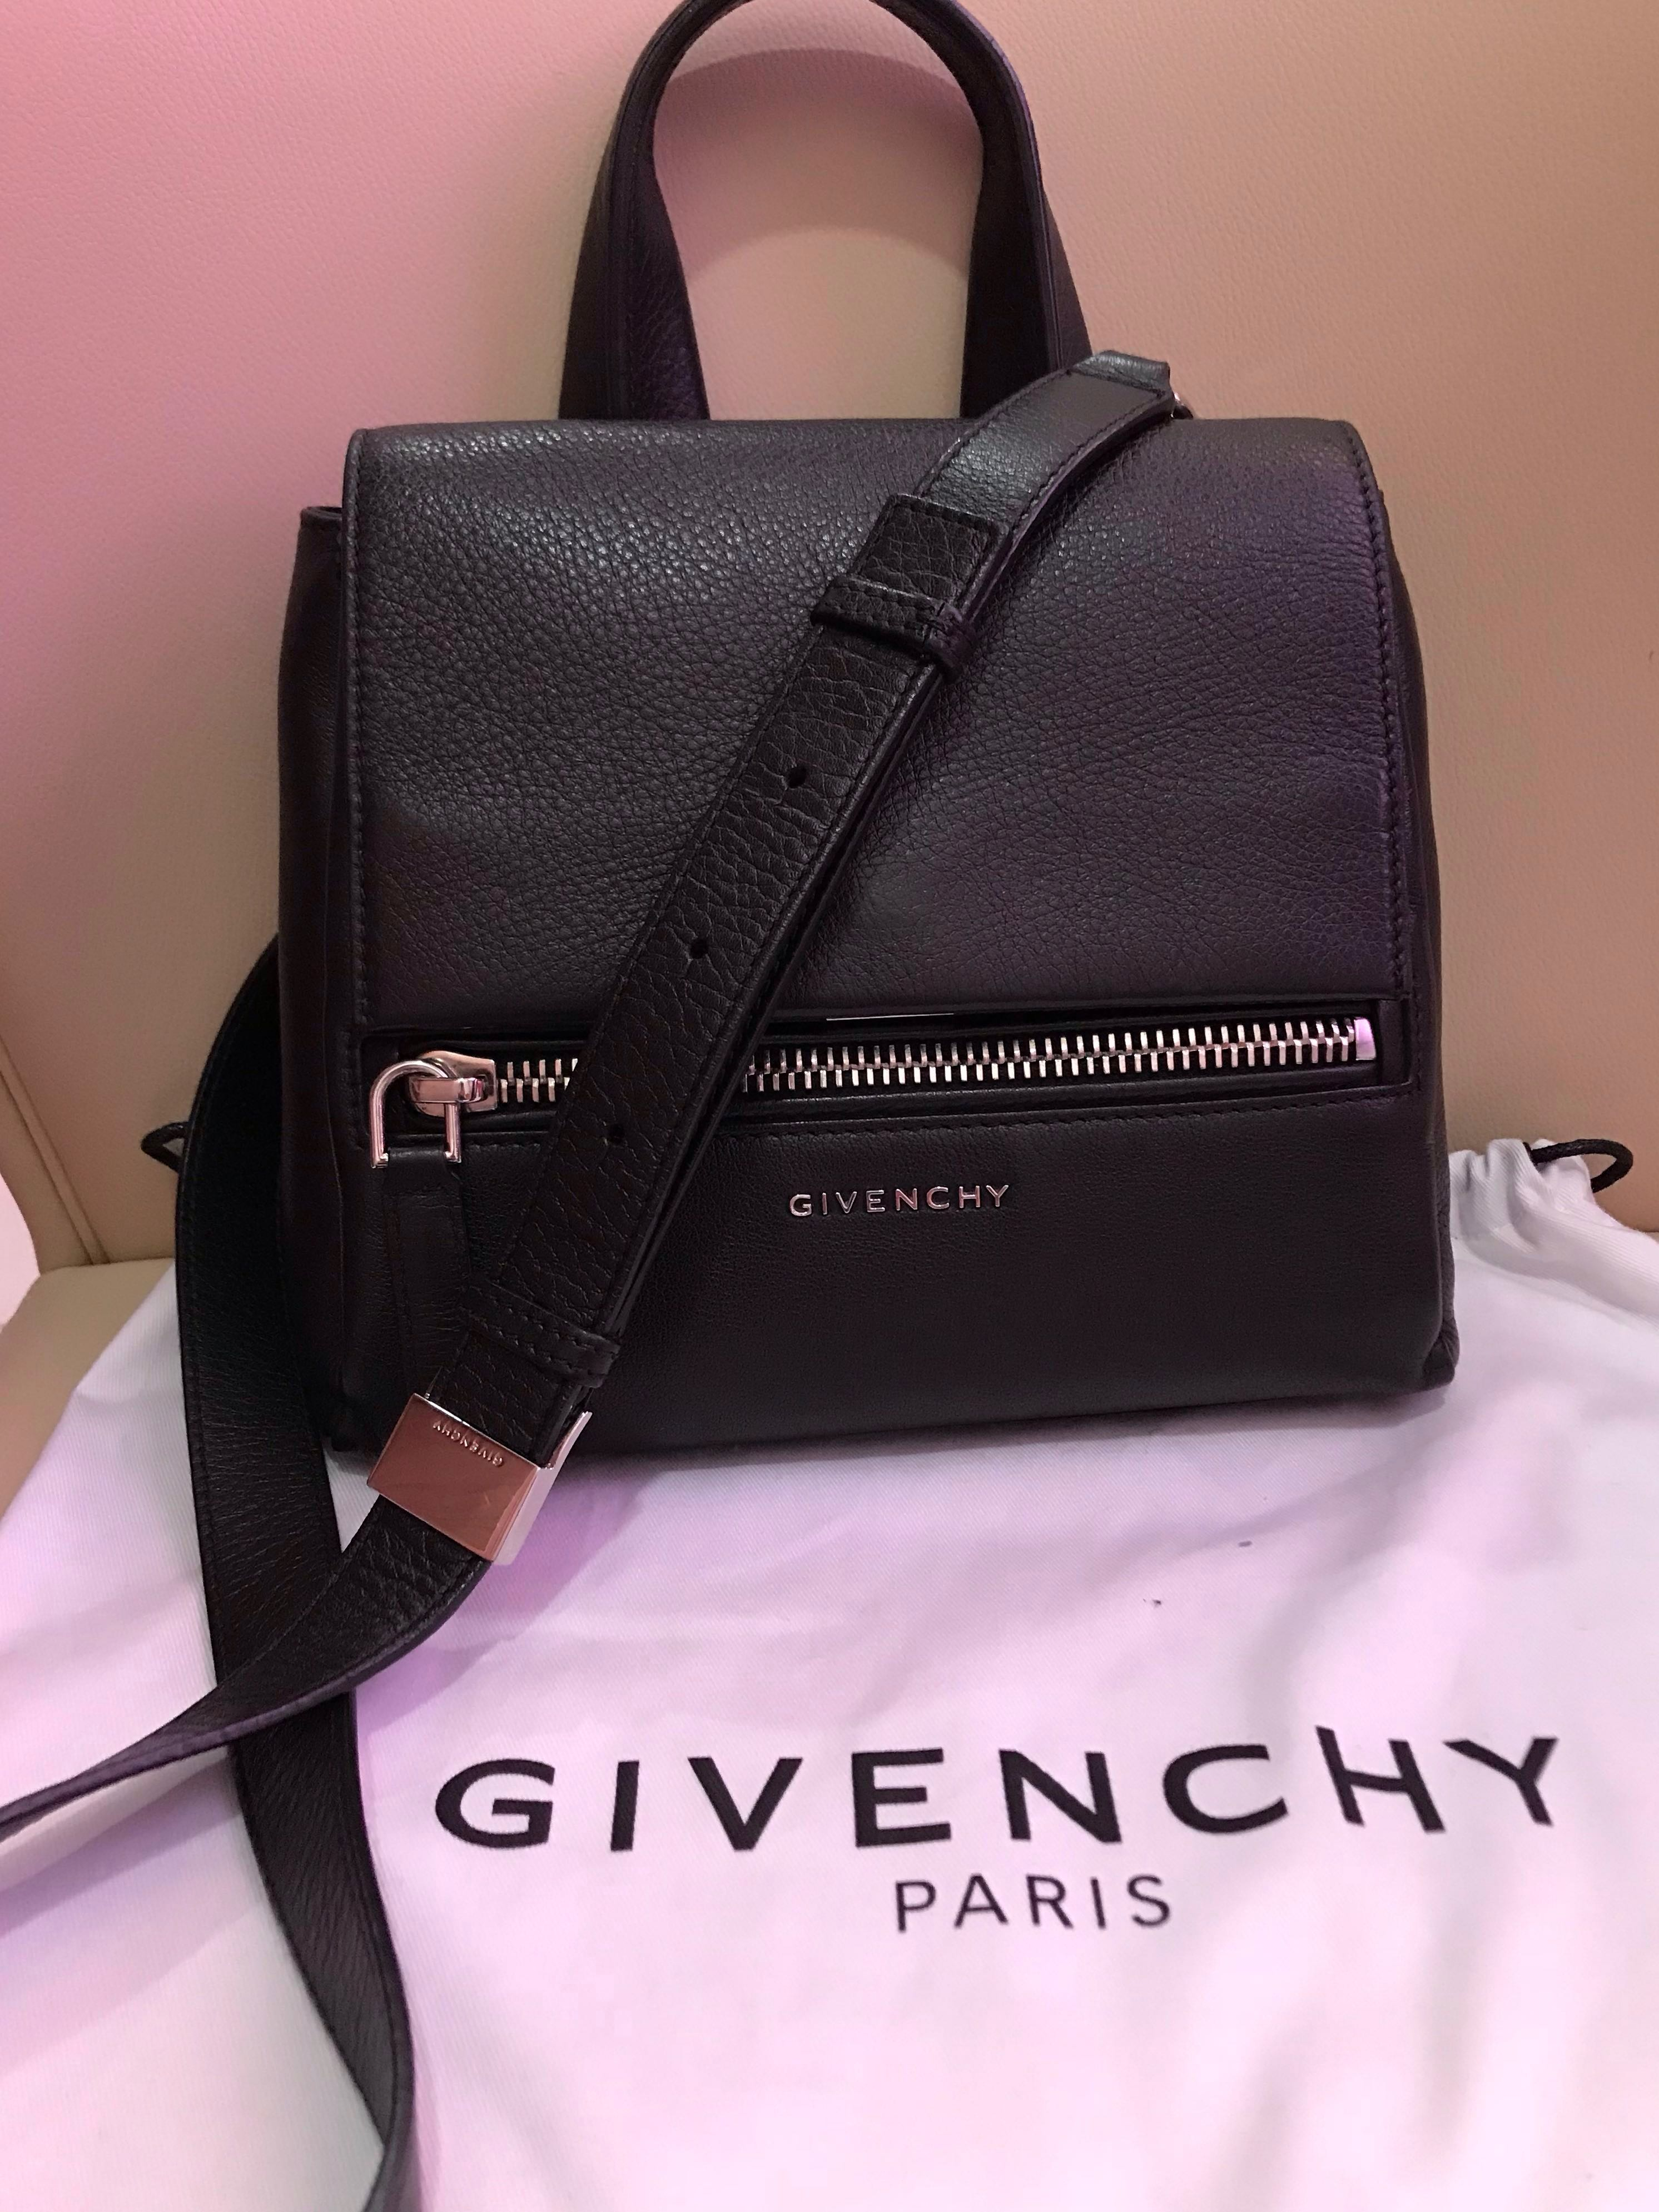 Givenchy black sling bag, Luxury, Bags   Wallets, Sling Bags on Carousell 6cd269ea30